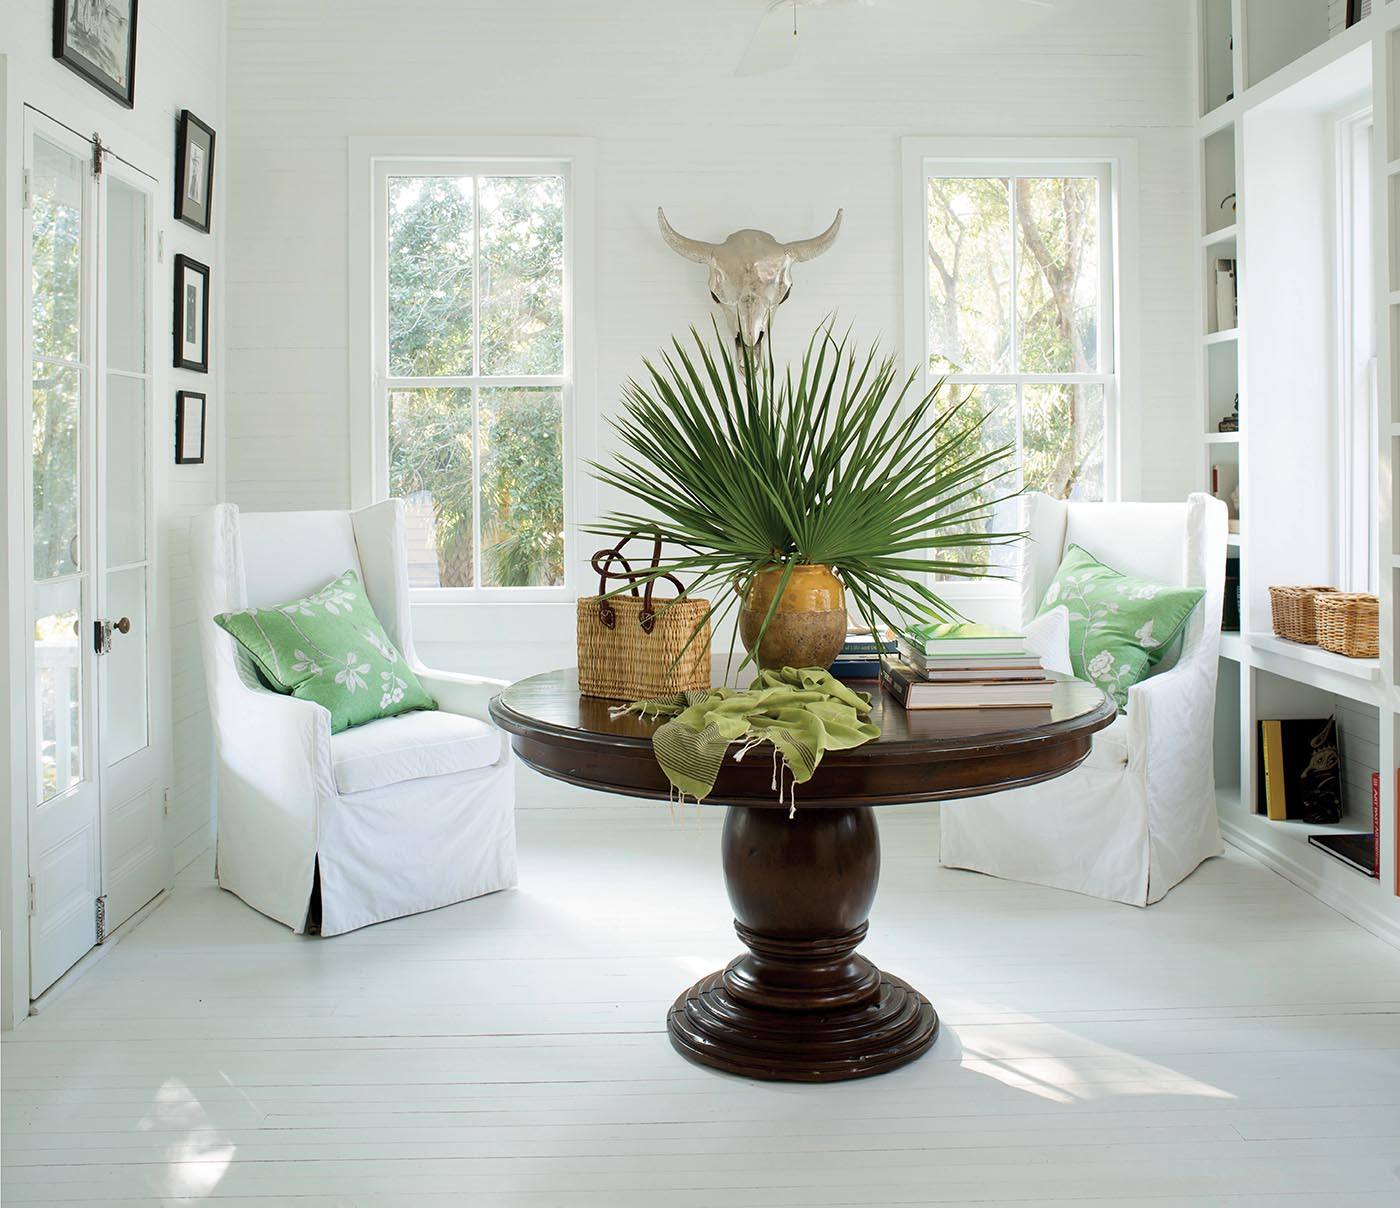 Sunroom with Large Wood Center Table and Plants | Magnolia Paint Company